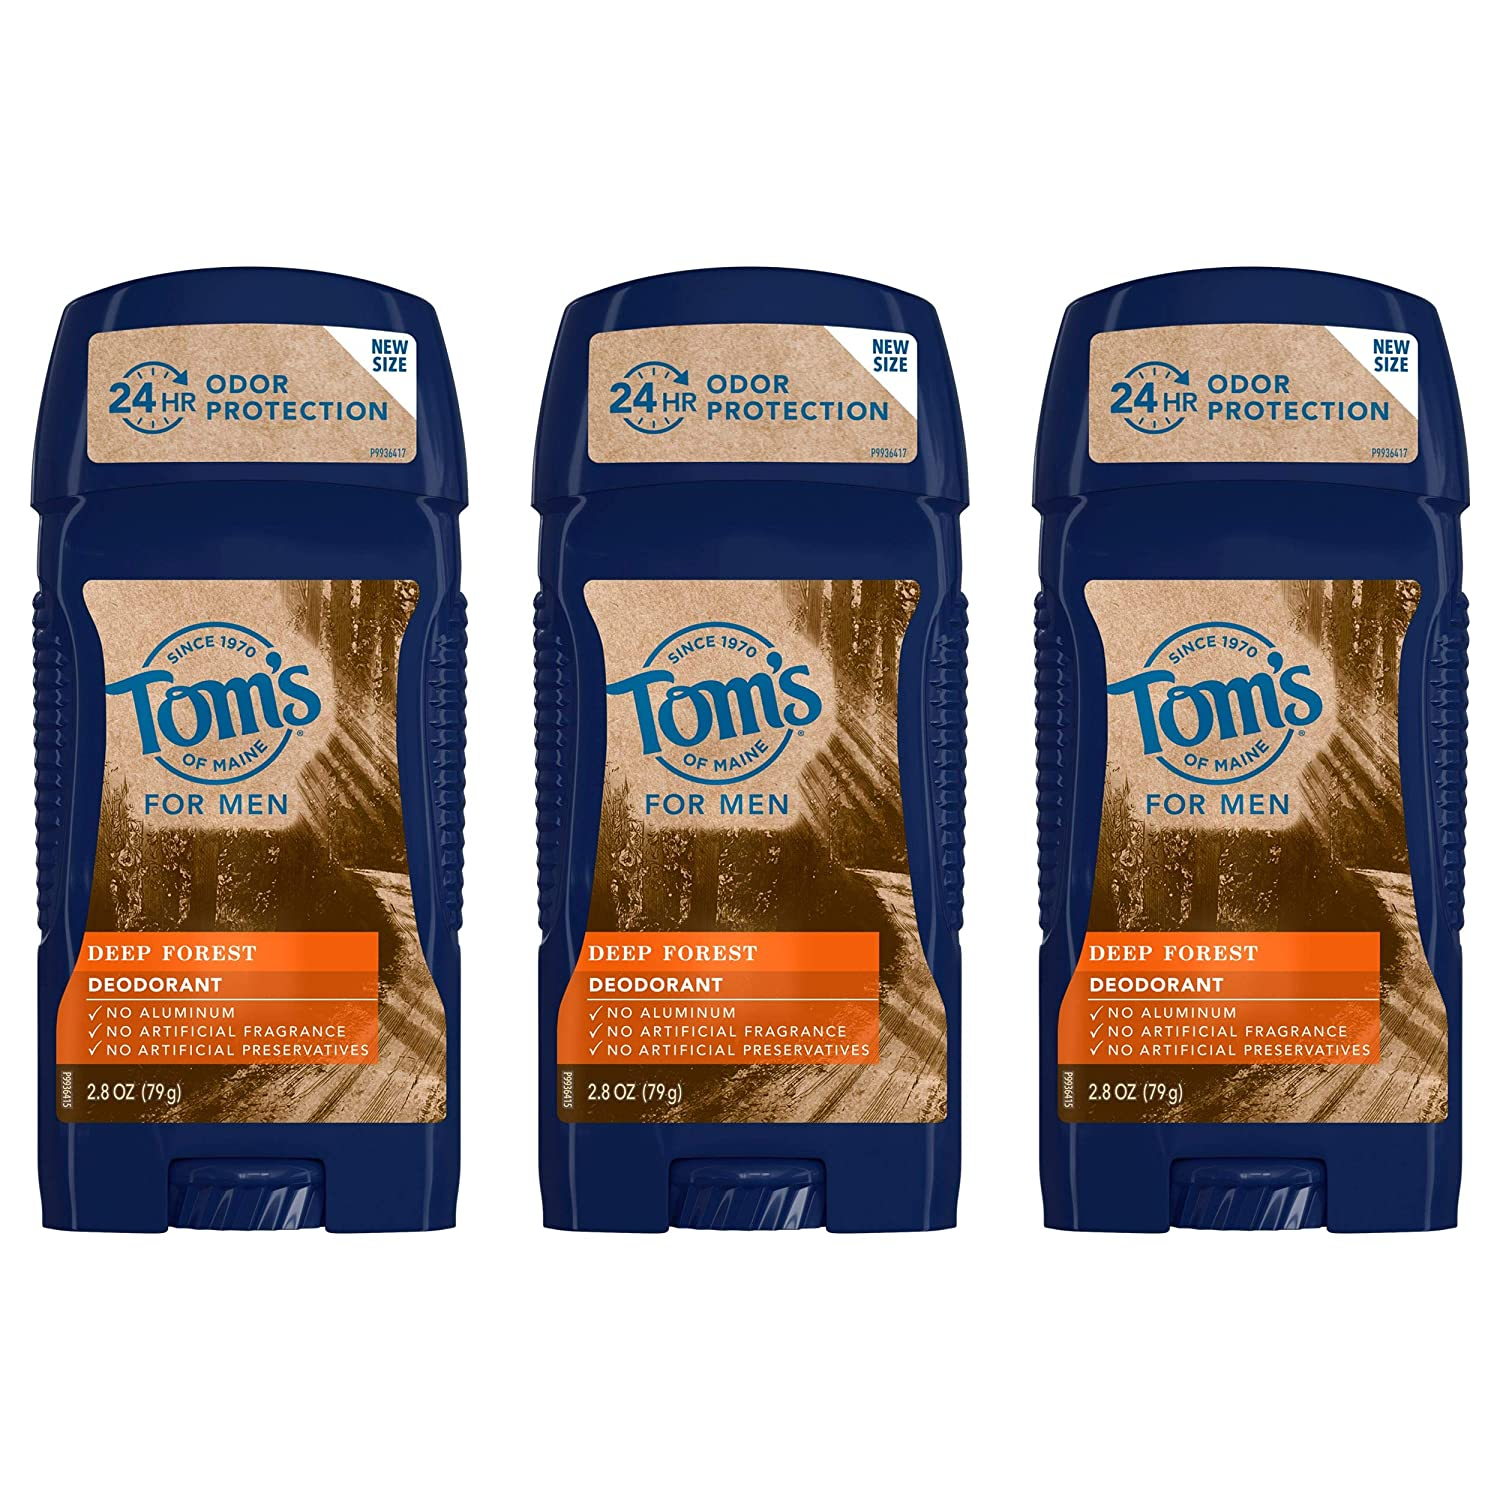 Tom's of Maine Natural Deodorant in deep forest scent, three pack